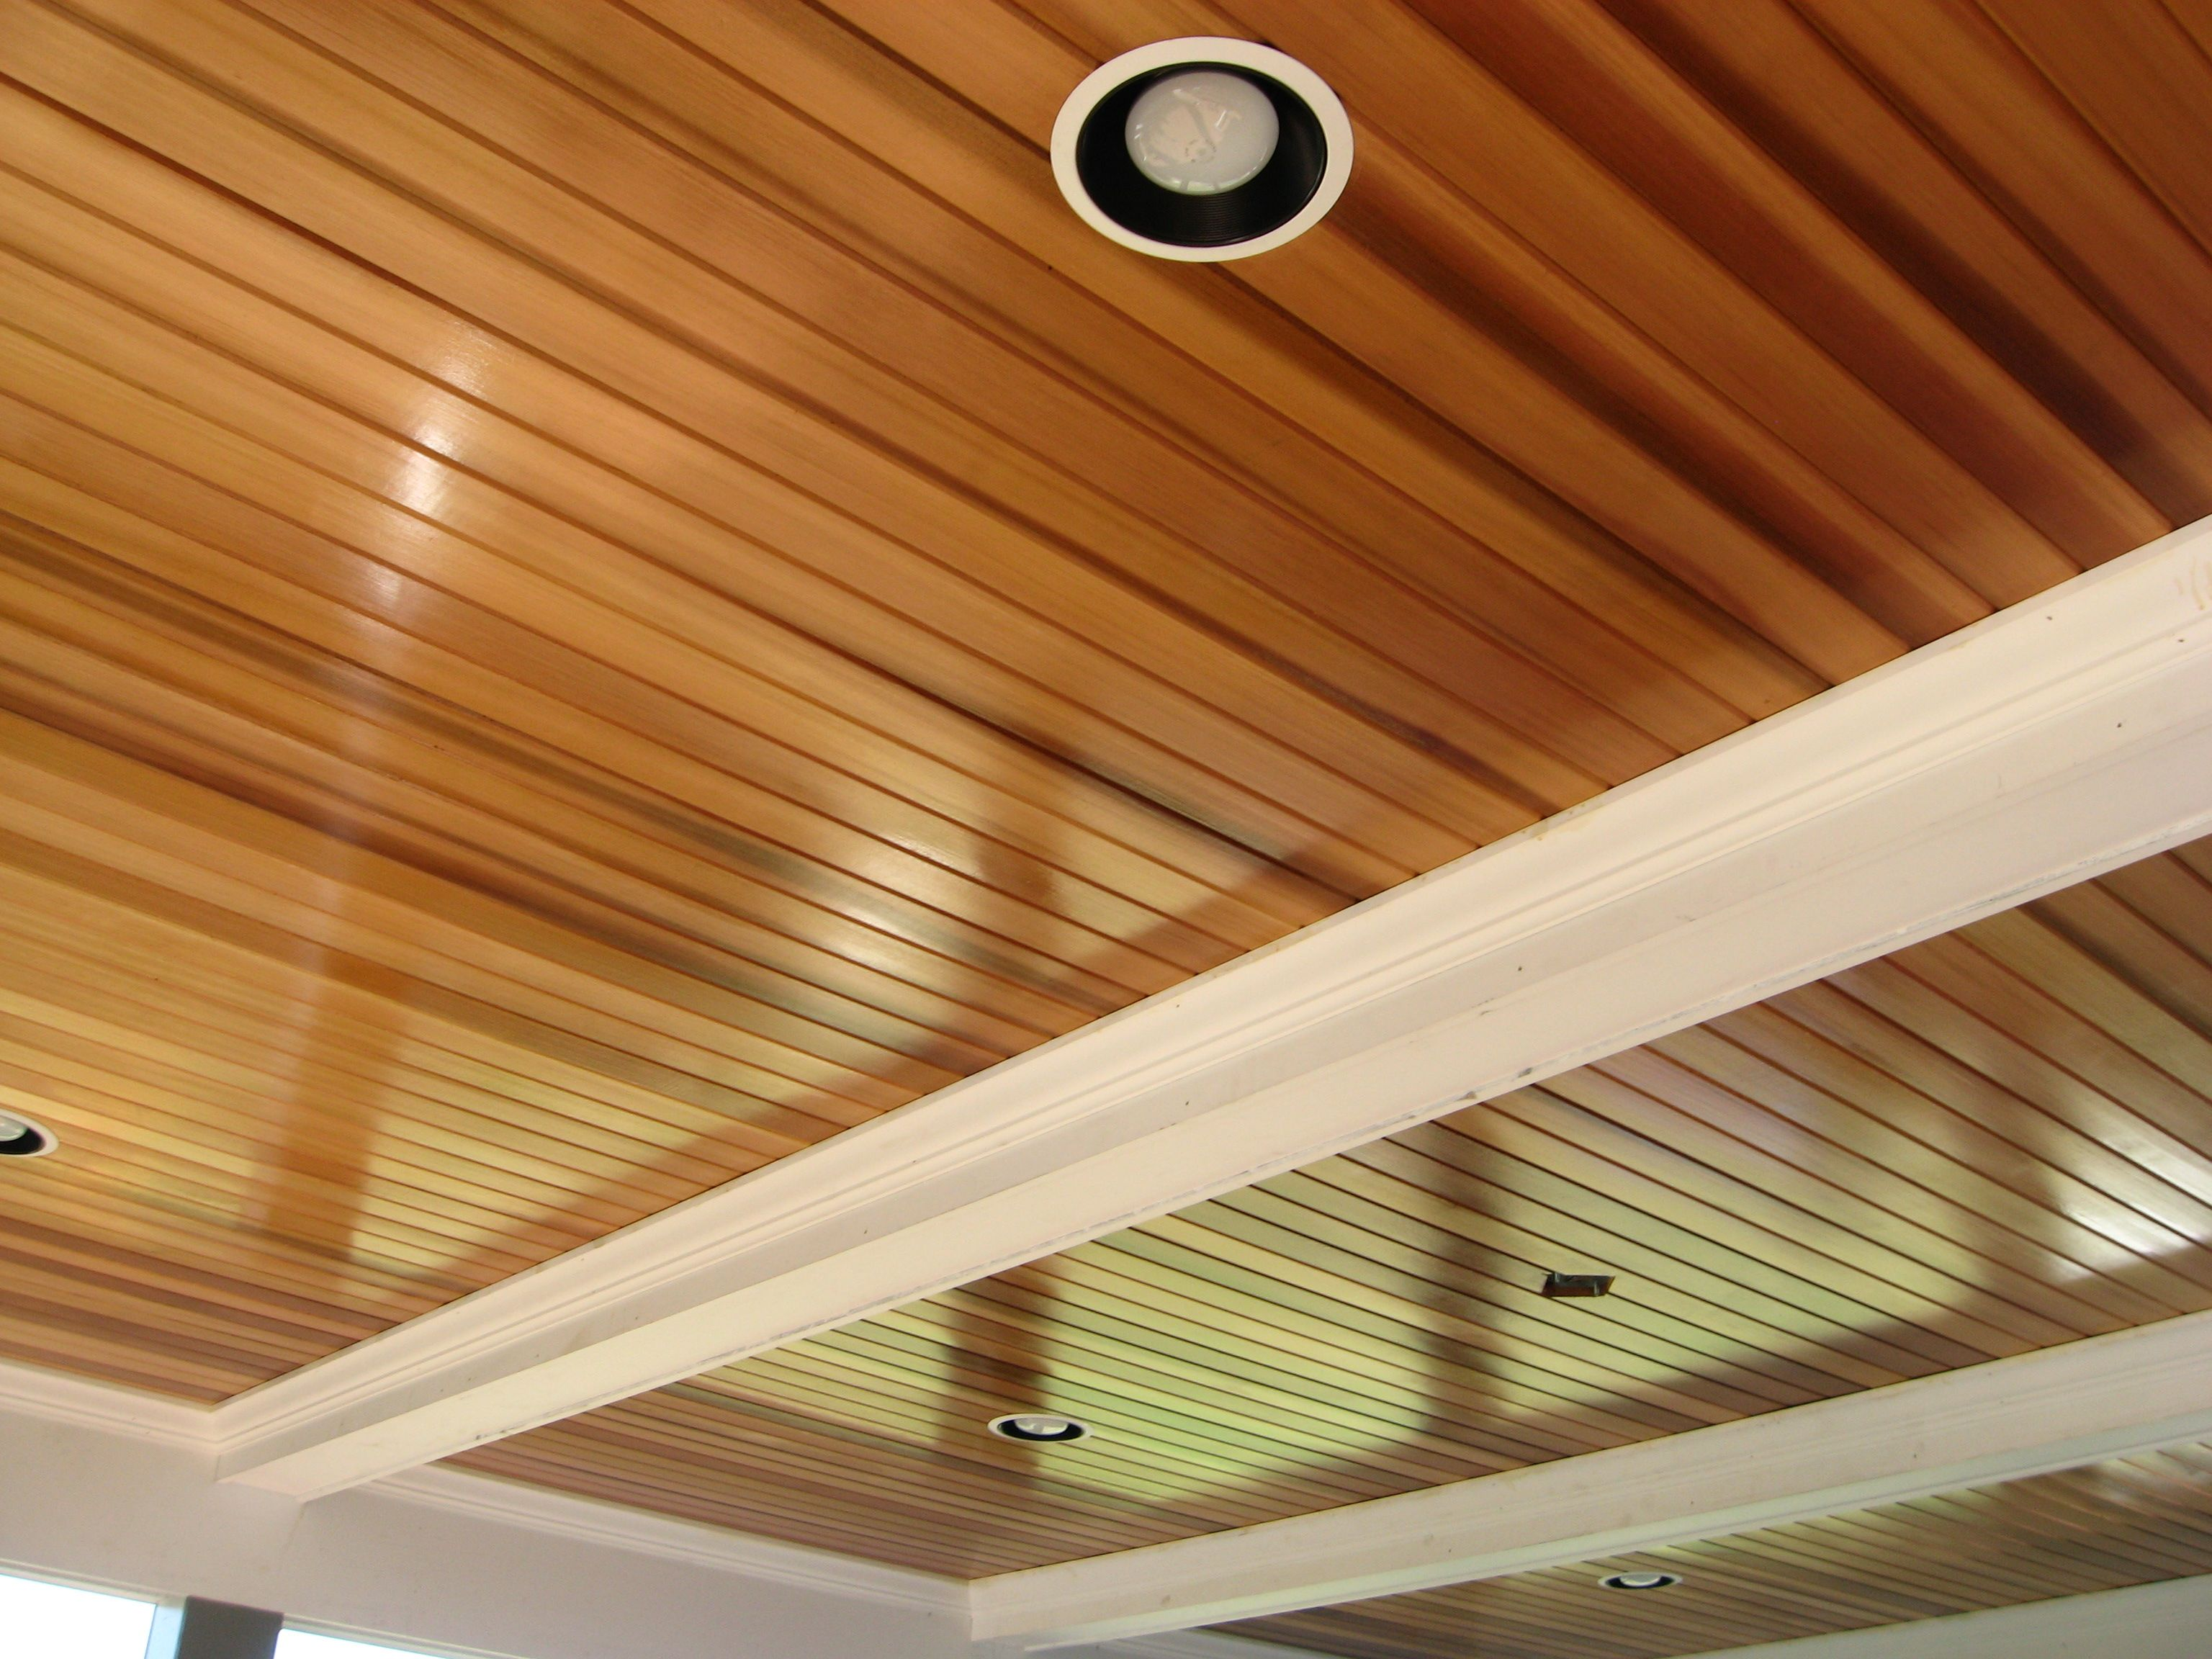 Cedar Ceiling Lake House Interior Wood Ceilings Ceiling